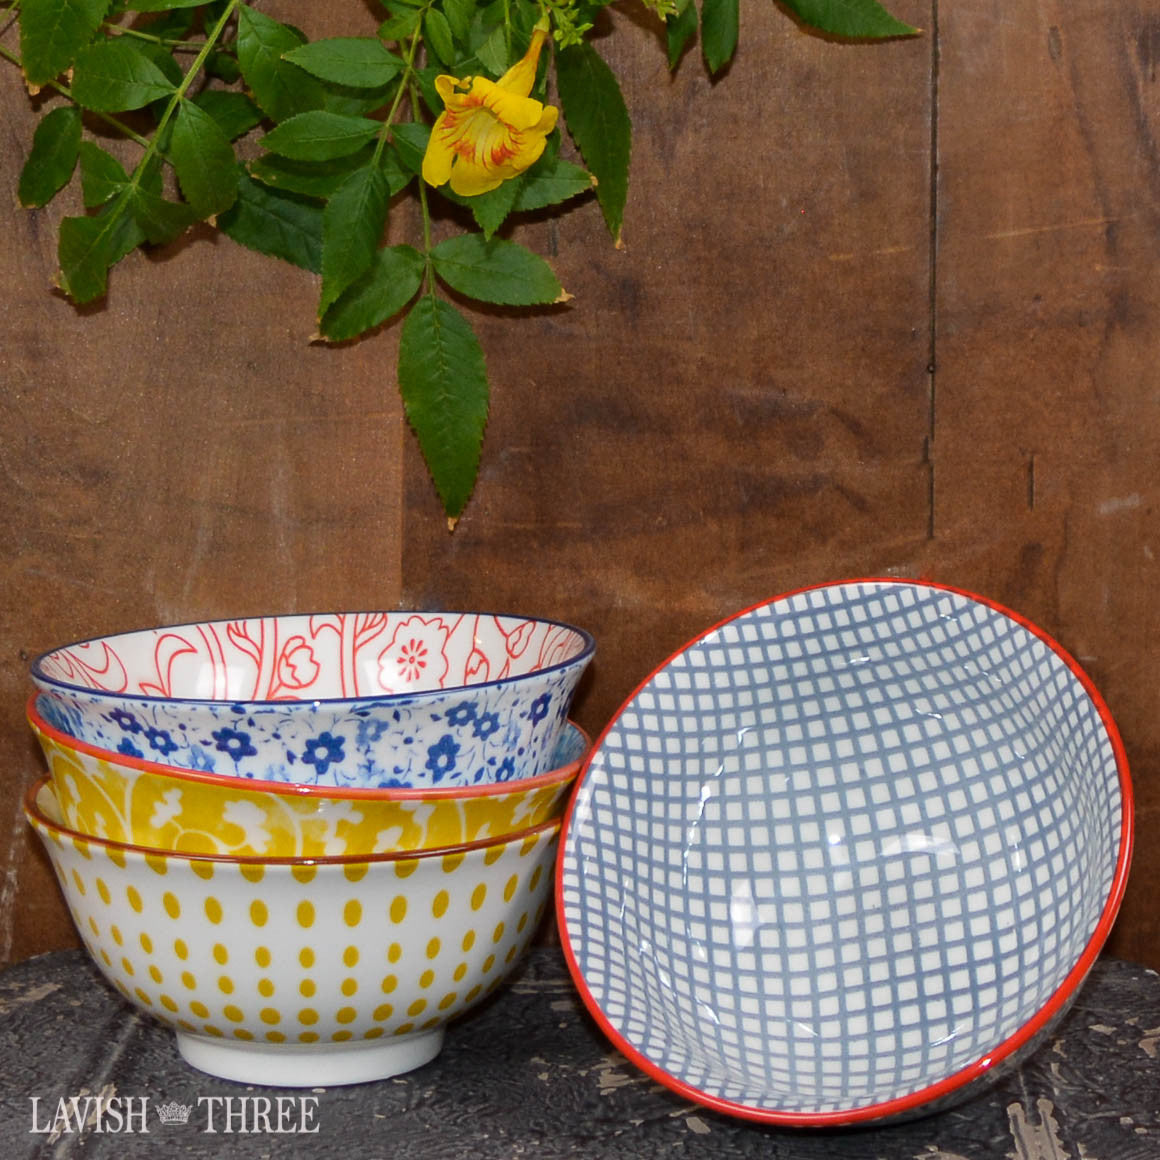 Printed eclectic bowls floral polka dot and pattern lavish three 3